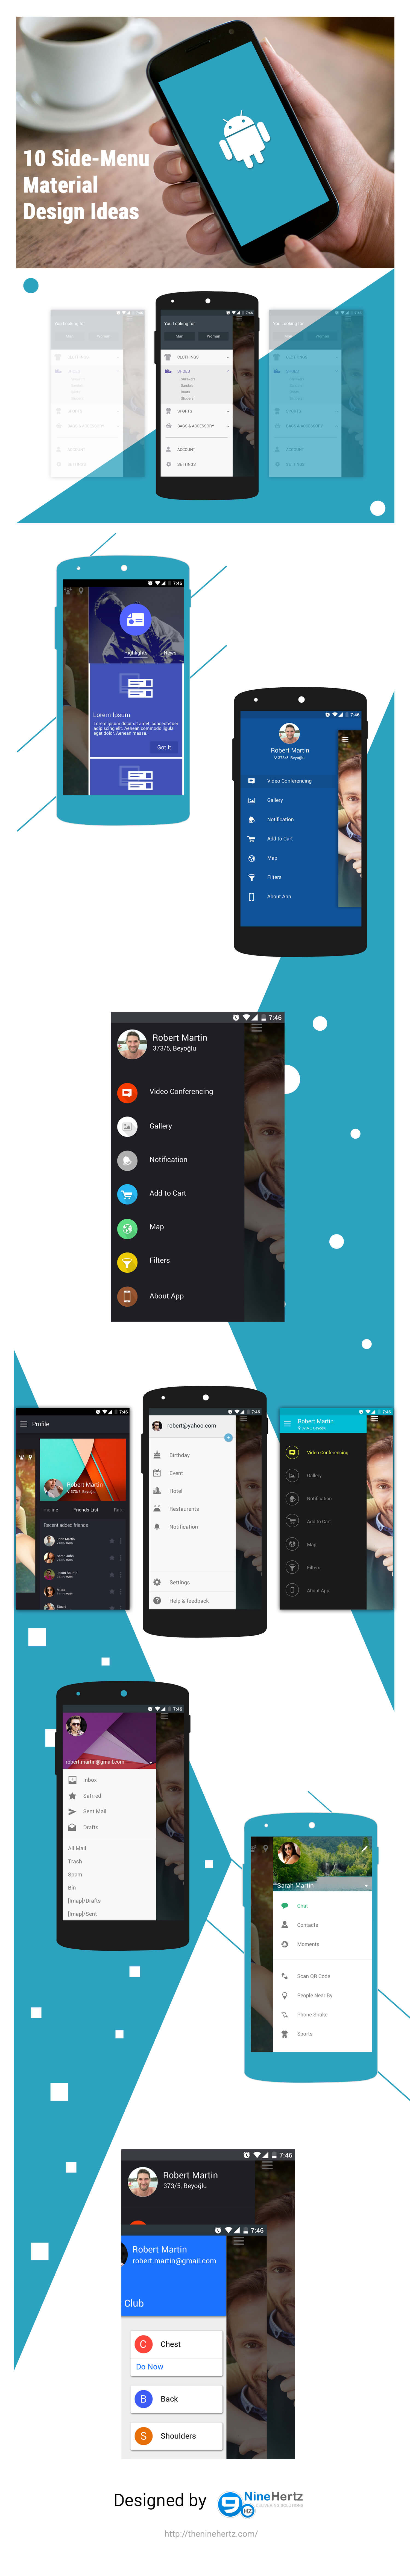 10 side menu material design ui ideas